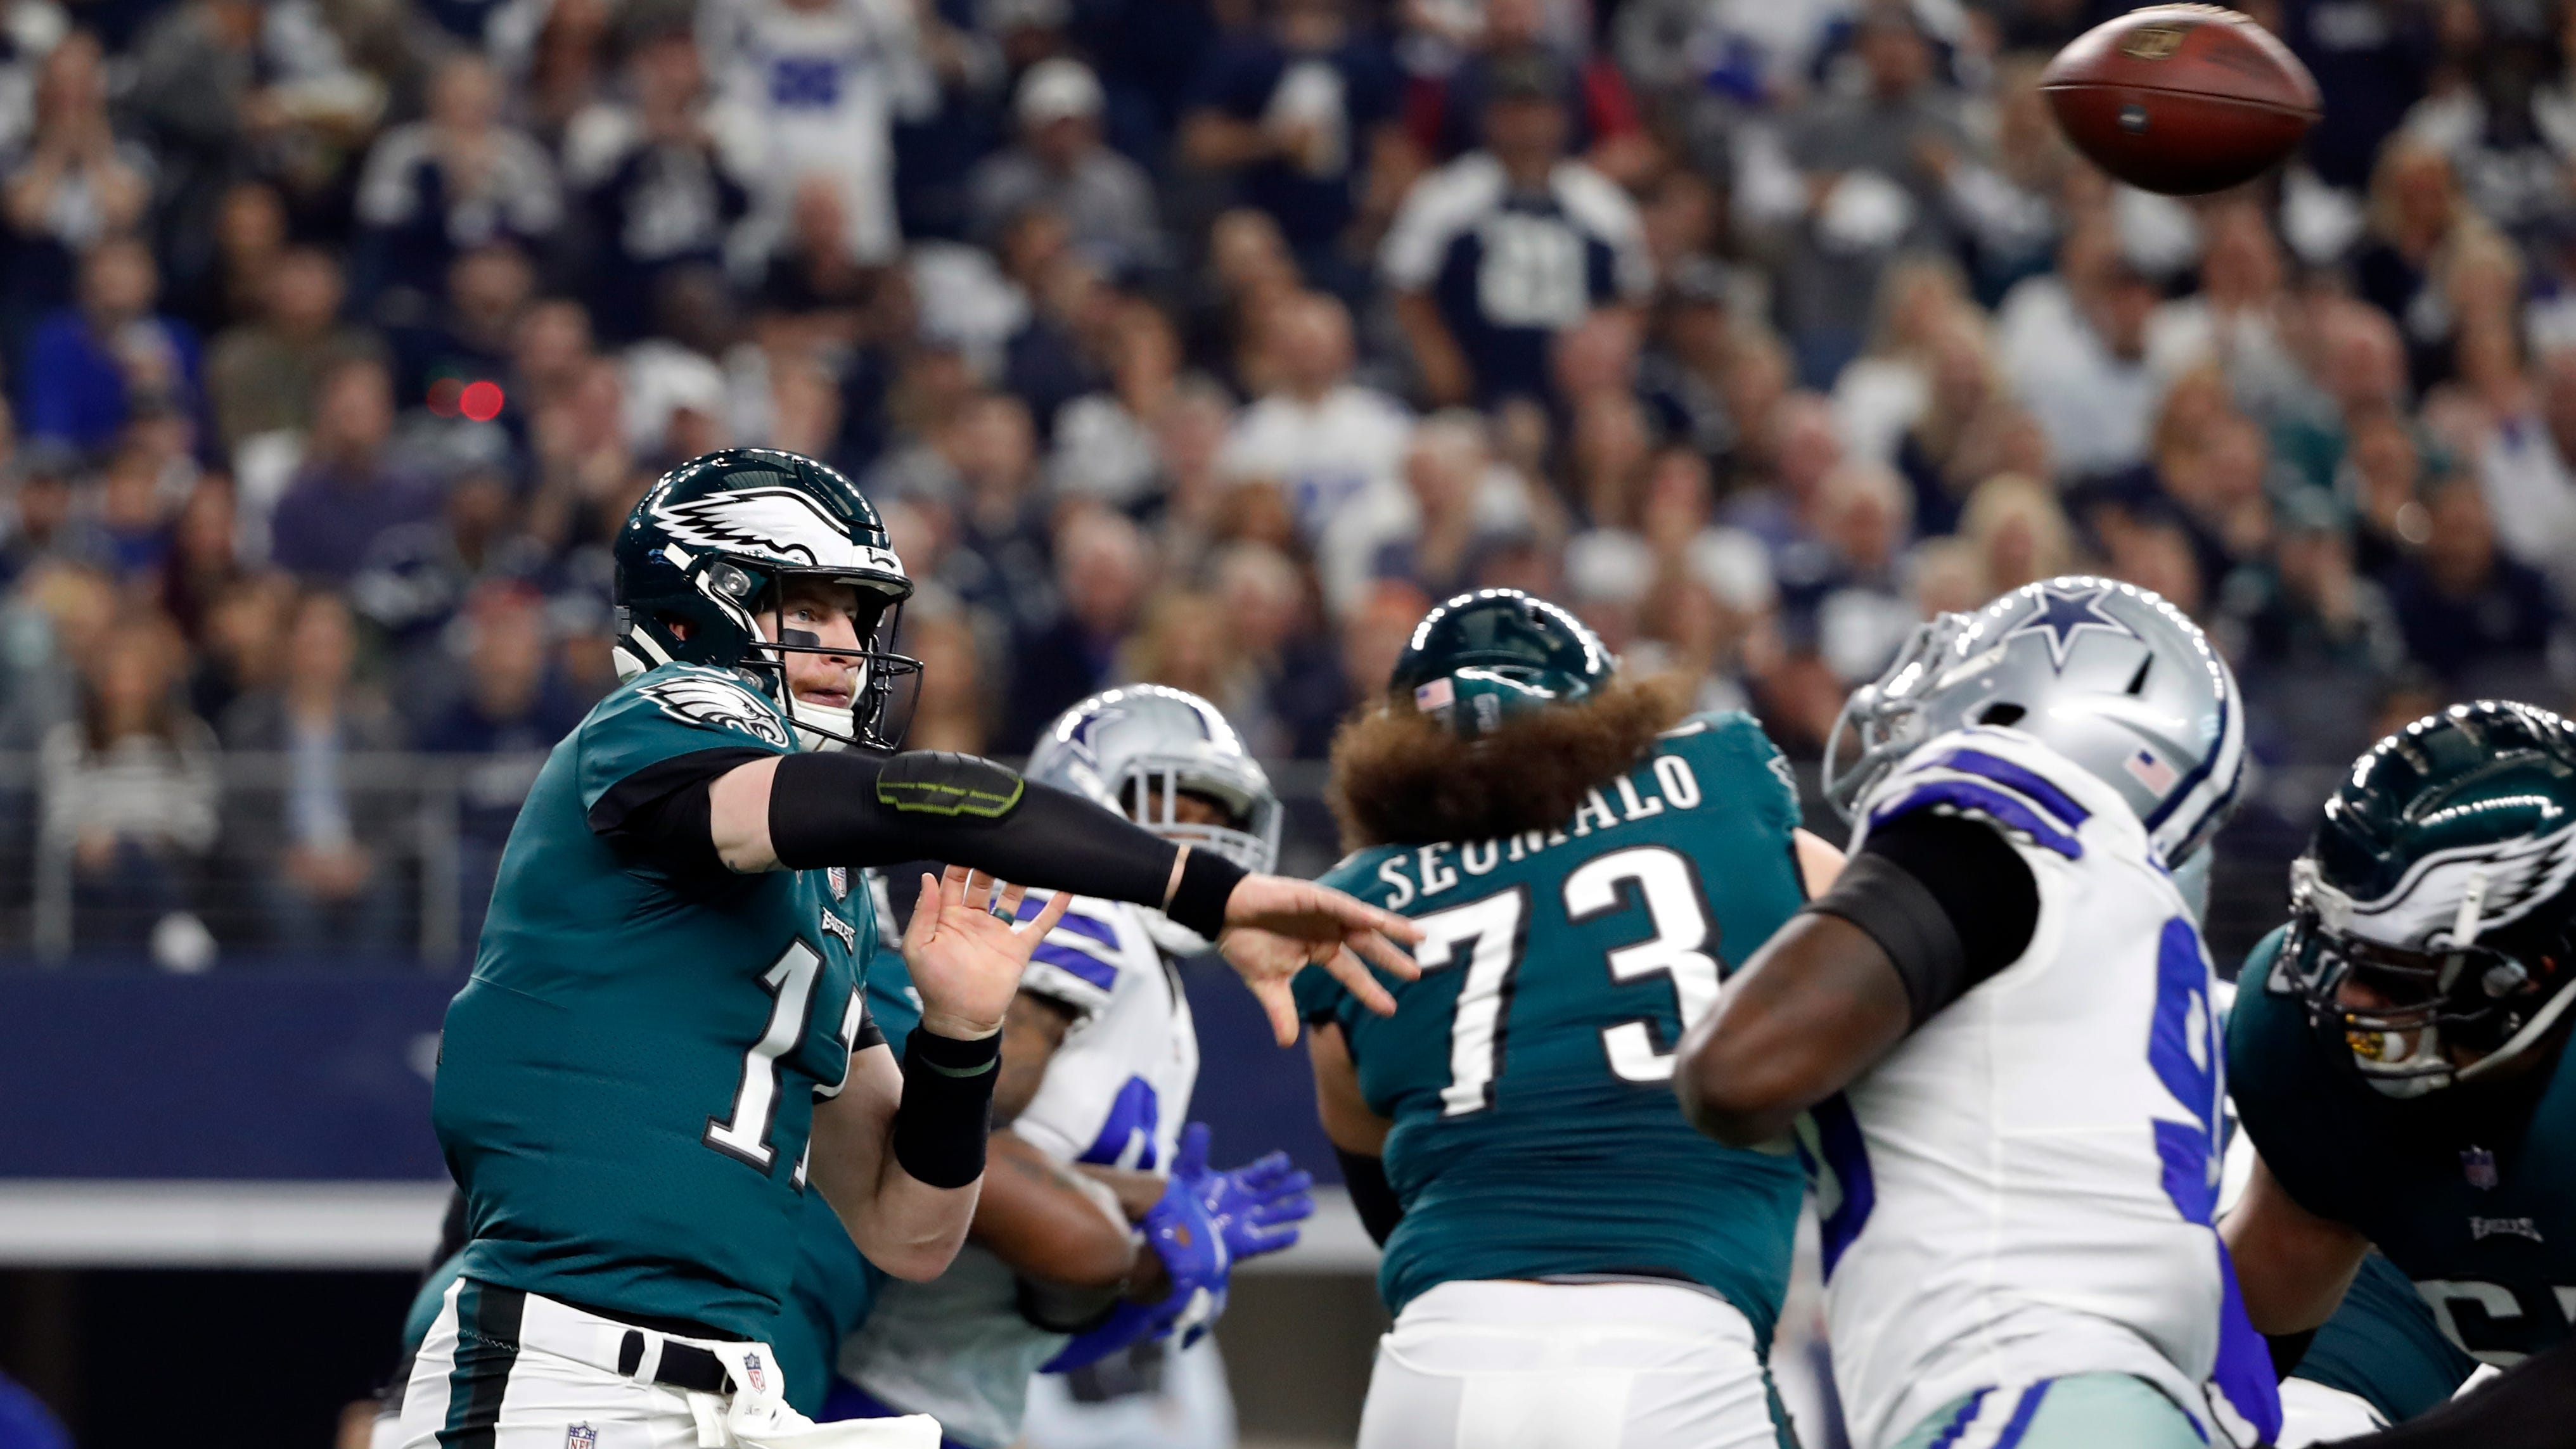 The Eagles quarterback has back soreness, but how will that affect him and the team going forward?